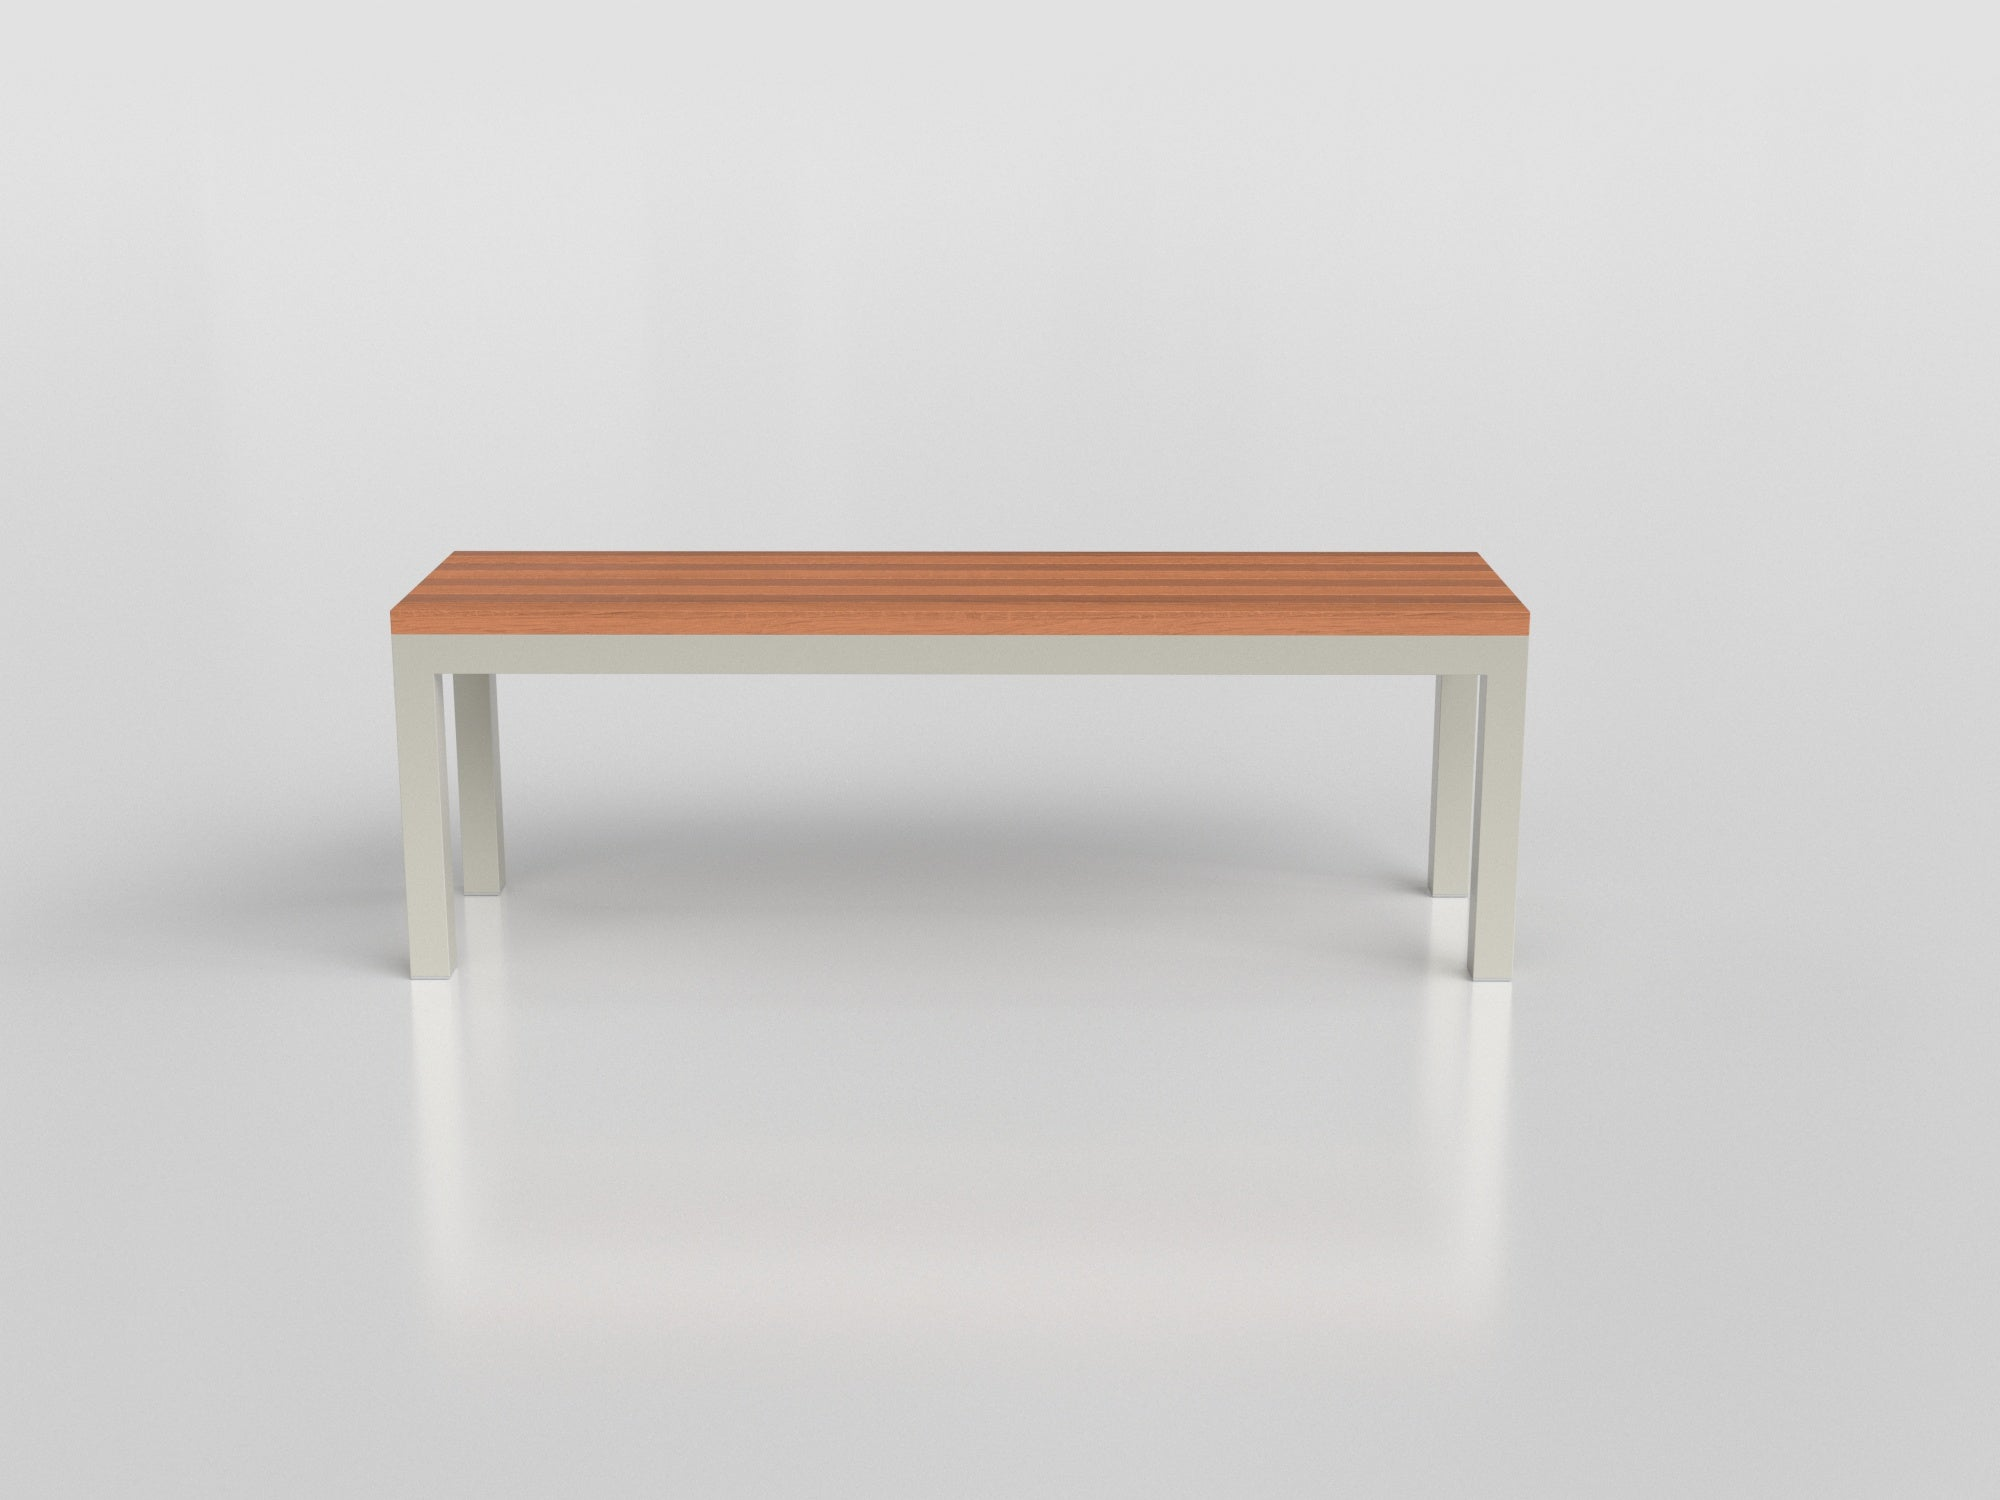 720 - Smart Bench Compact